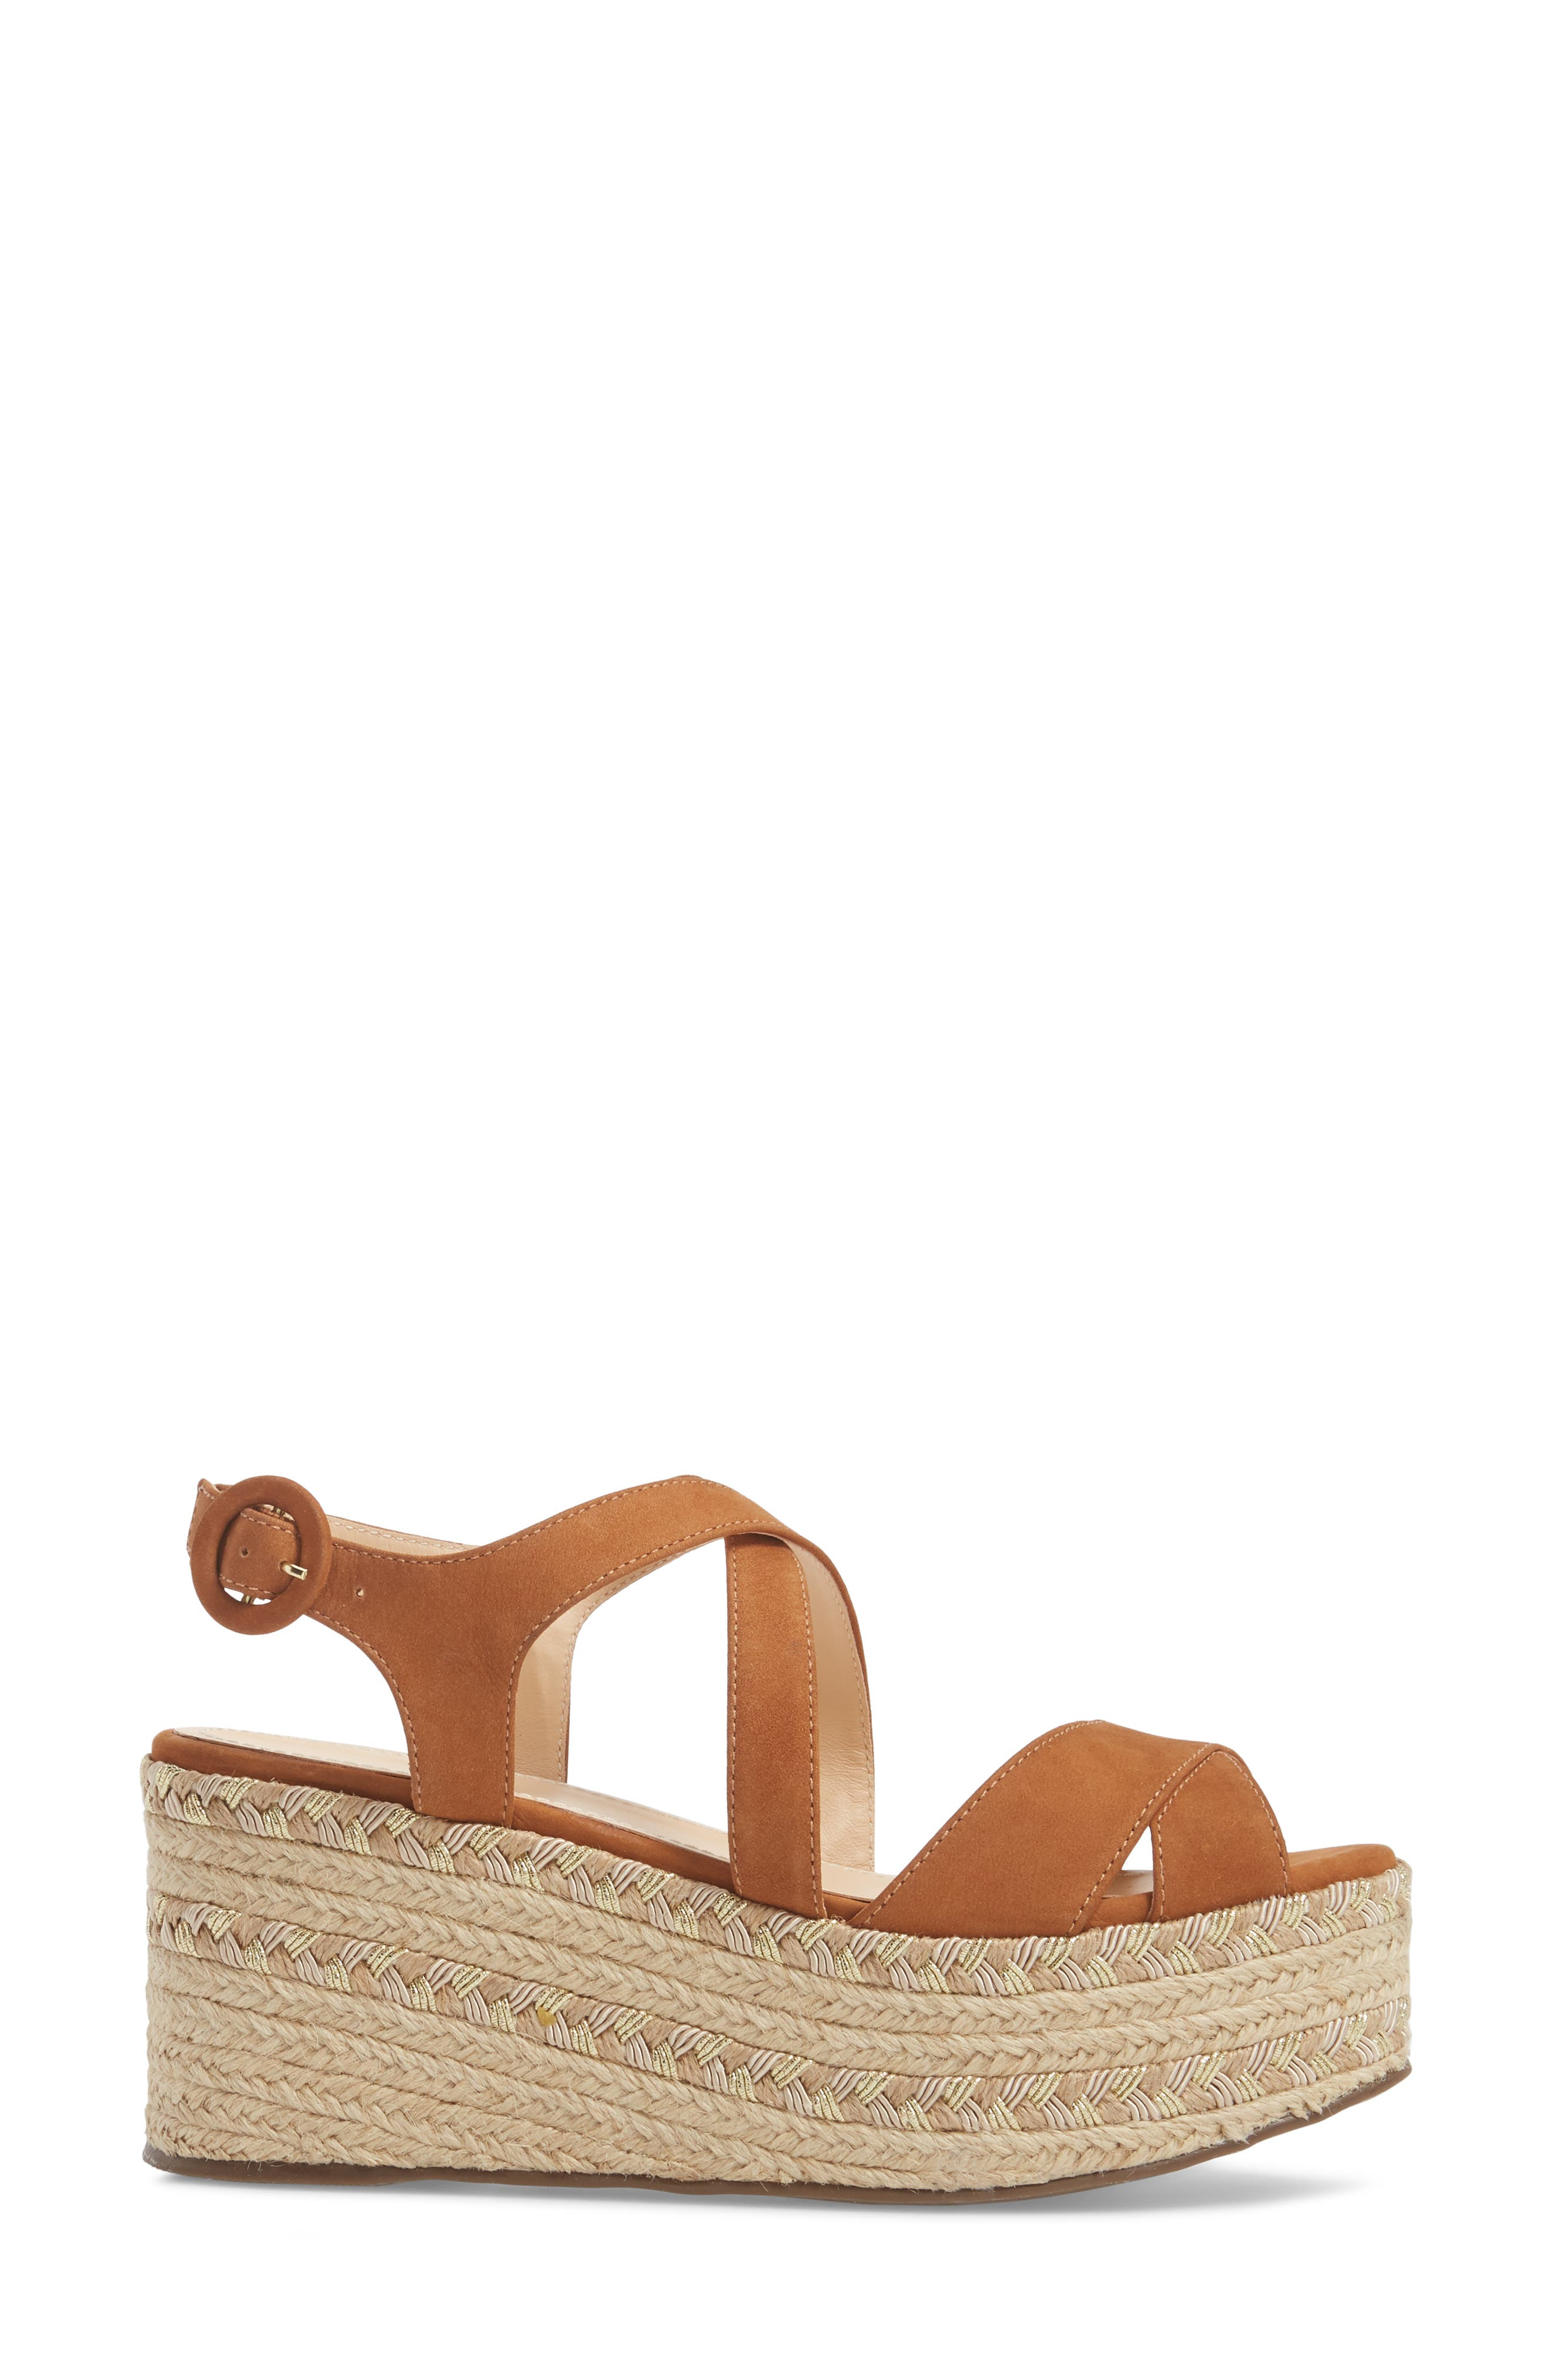 KLUB NICO,                             Vikki Espadrille Platform Sandal,                             Alternate thumbnail 3, color,                             TAN LEATHER